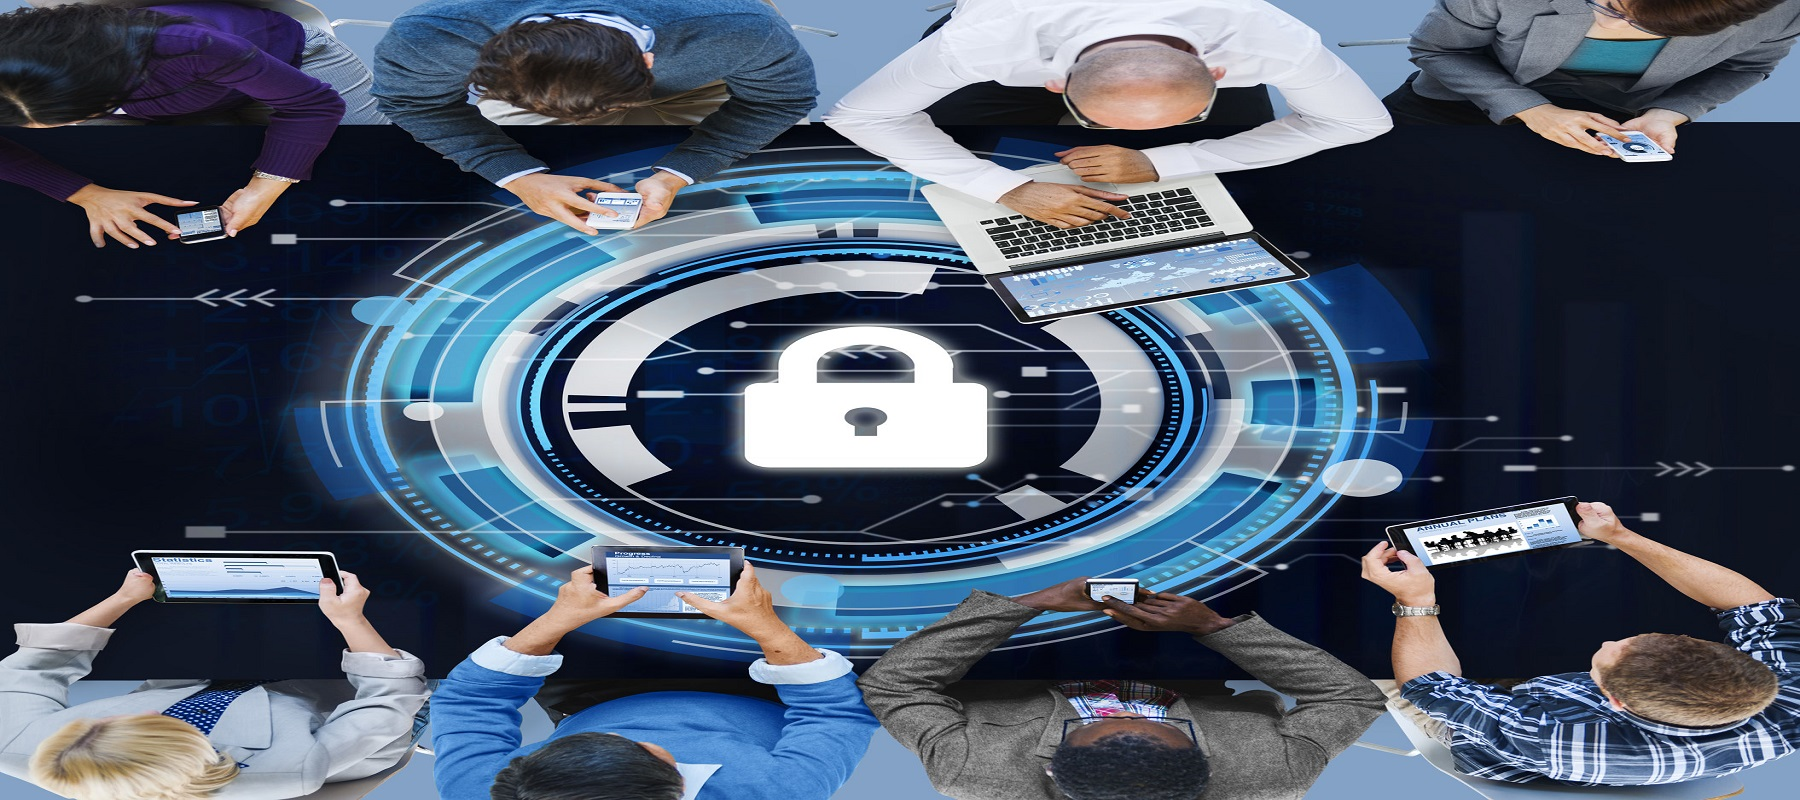 Why Security Should Be the Focus of Your London IT Consulting Provider